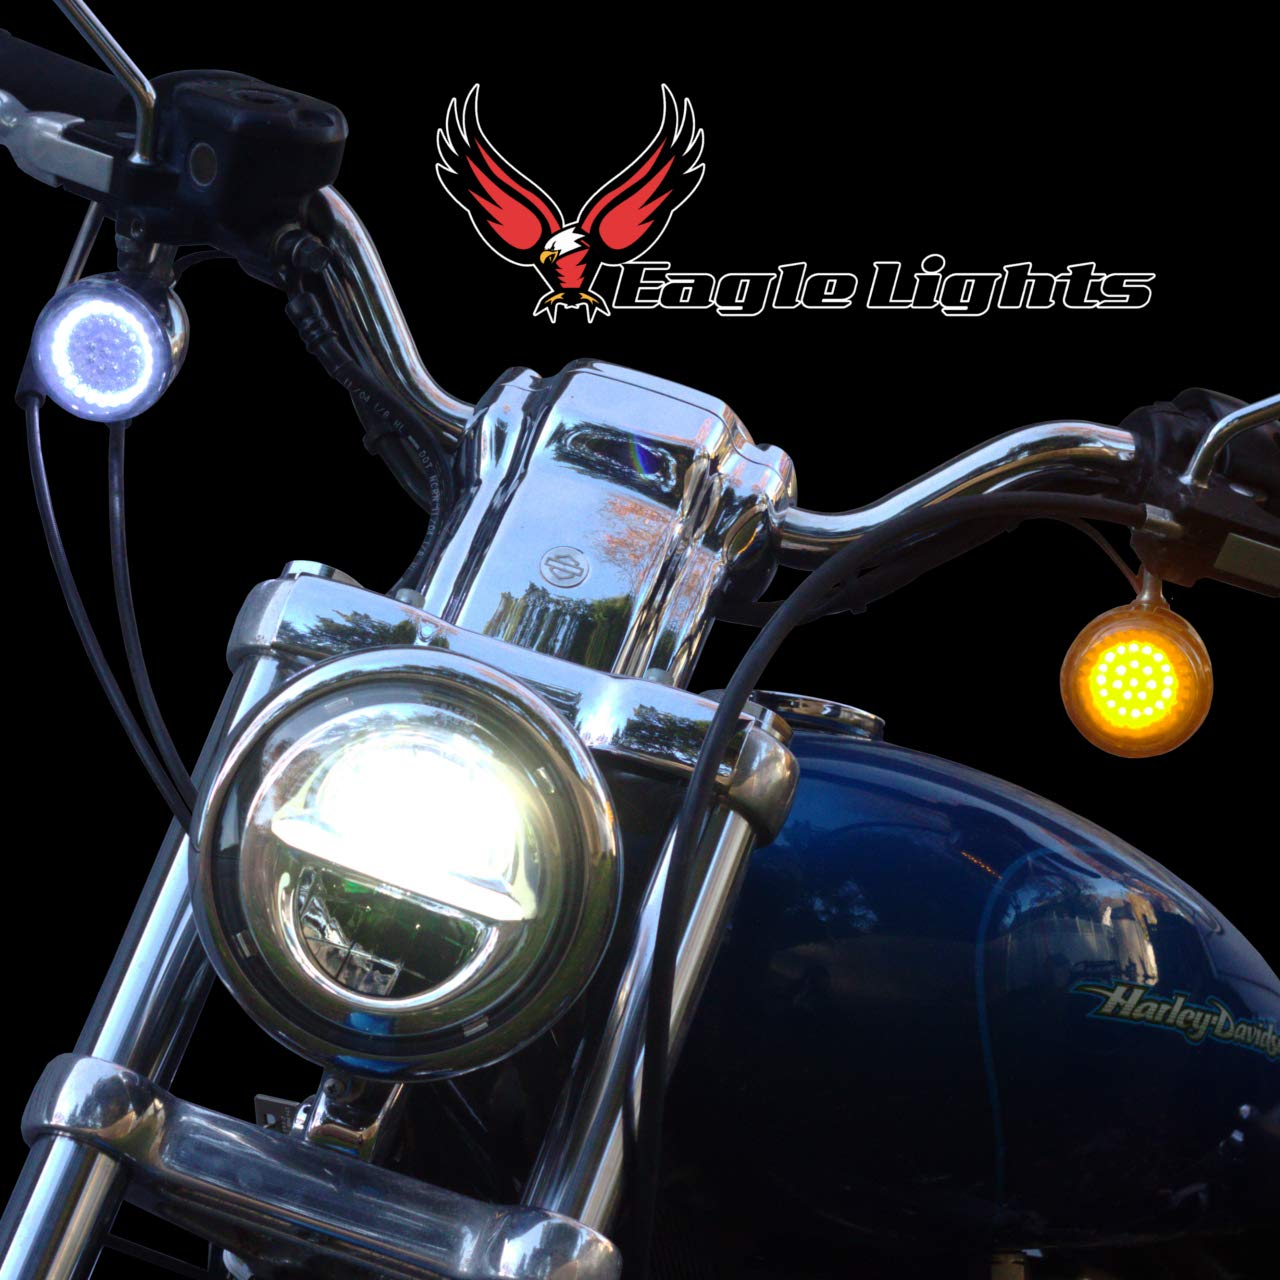 Eagle Lights 2 Led Turn Signal Kit For Harley Davidson Wiring Driving Motorcycle Including Indian Front 1157 And Rear Add Smoked Lenses Automotive